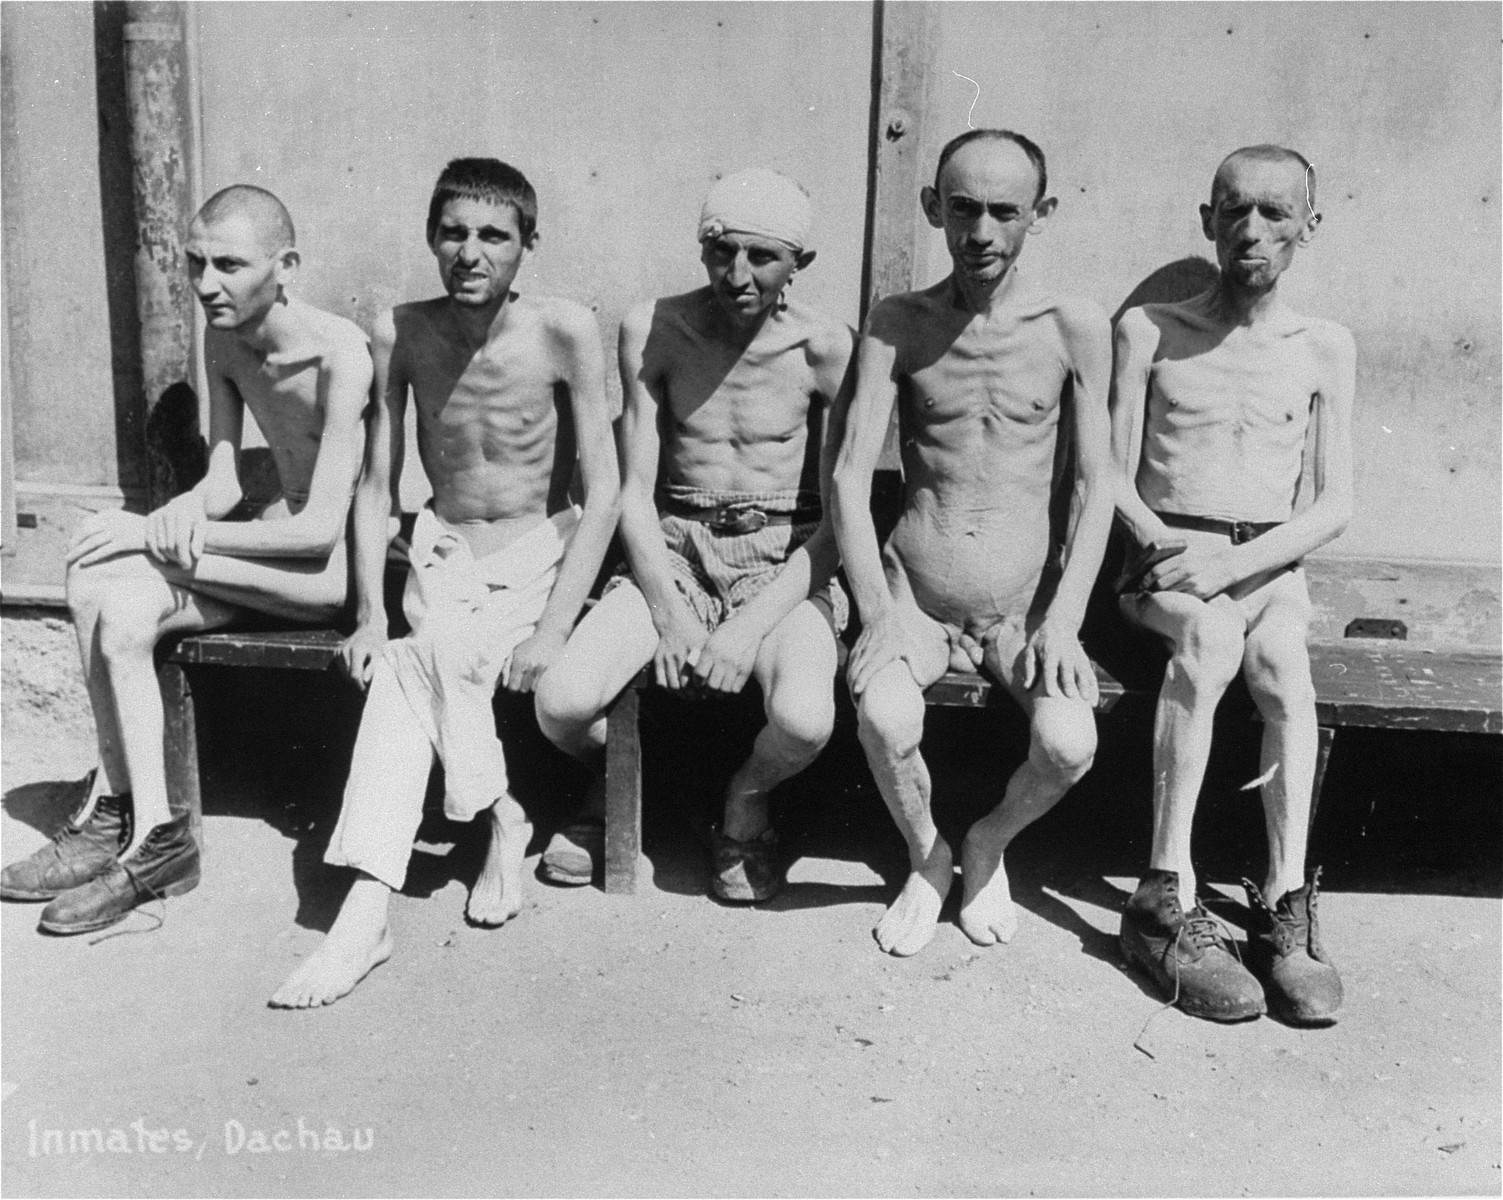 Survivors in Dachau sit together on a bench.